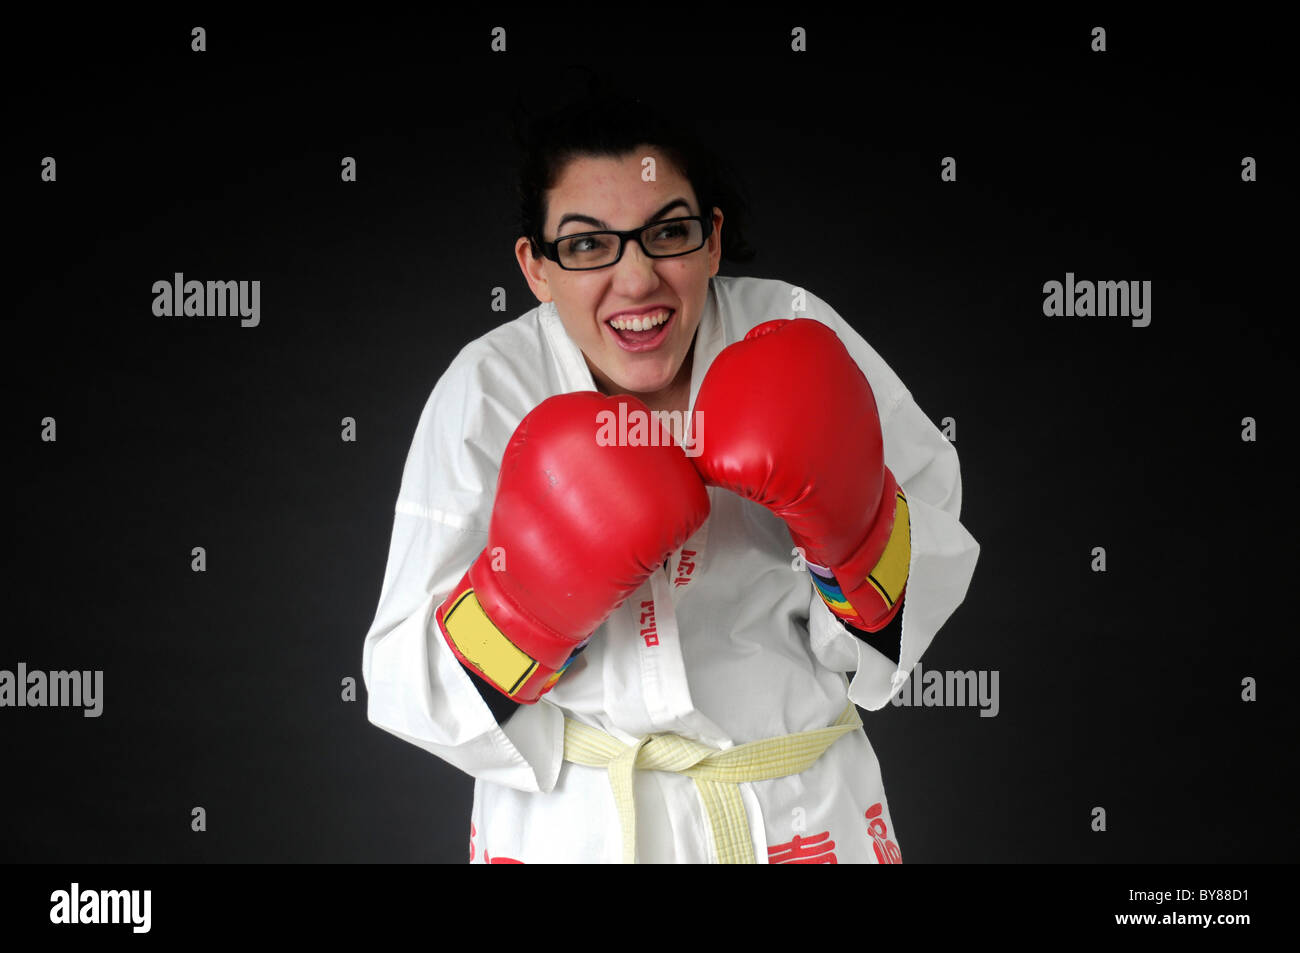 female Wimp tries to box On black Background - Stock Image